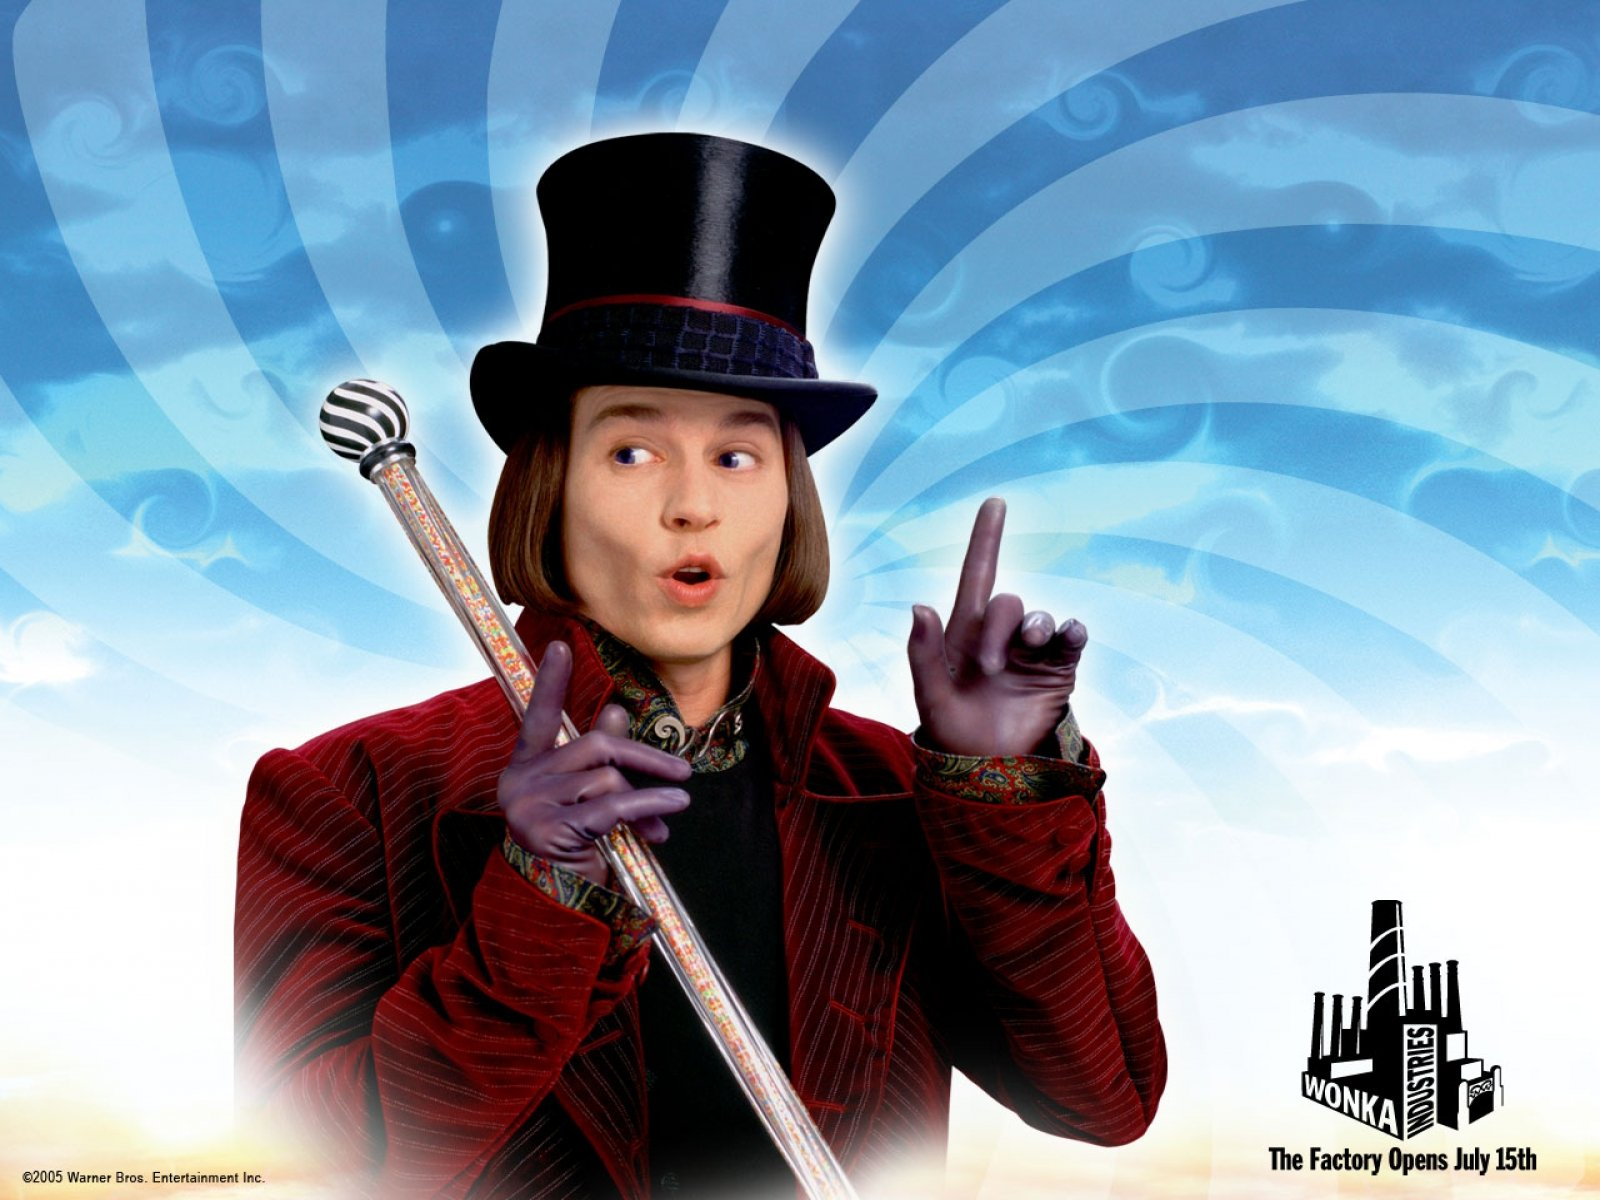 charlie chocolate factory depp adventure comedy family fantasy charlie chocolate factory depp adventure comedy family fantasy charlie chocolate factory musical 1600x1200 561749 up